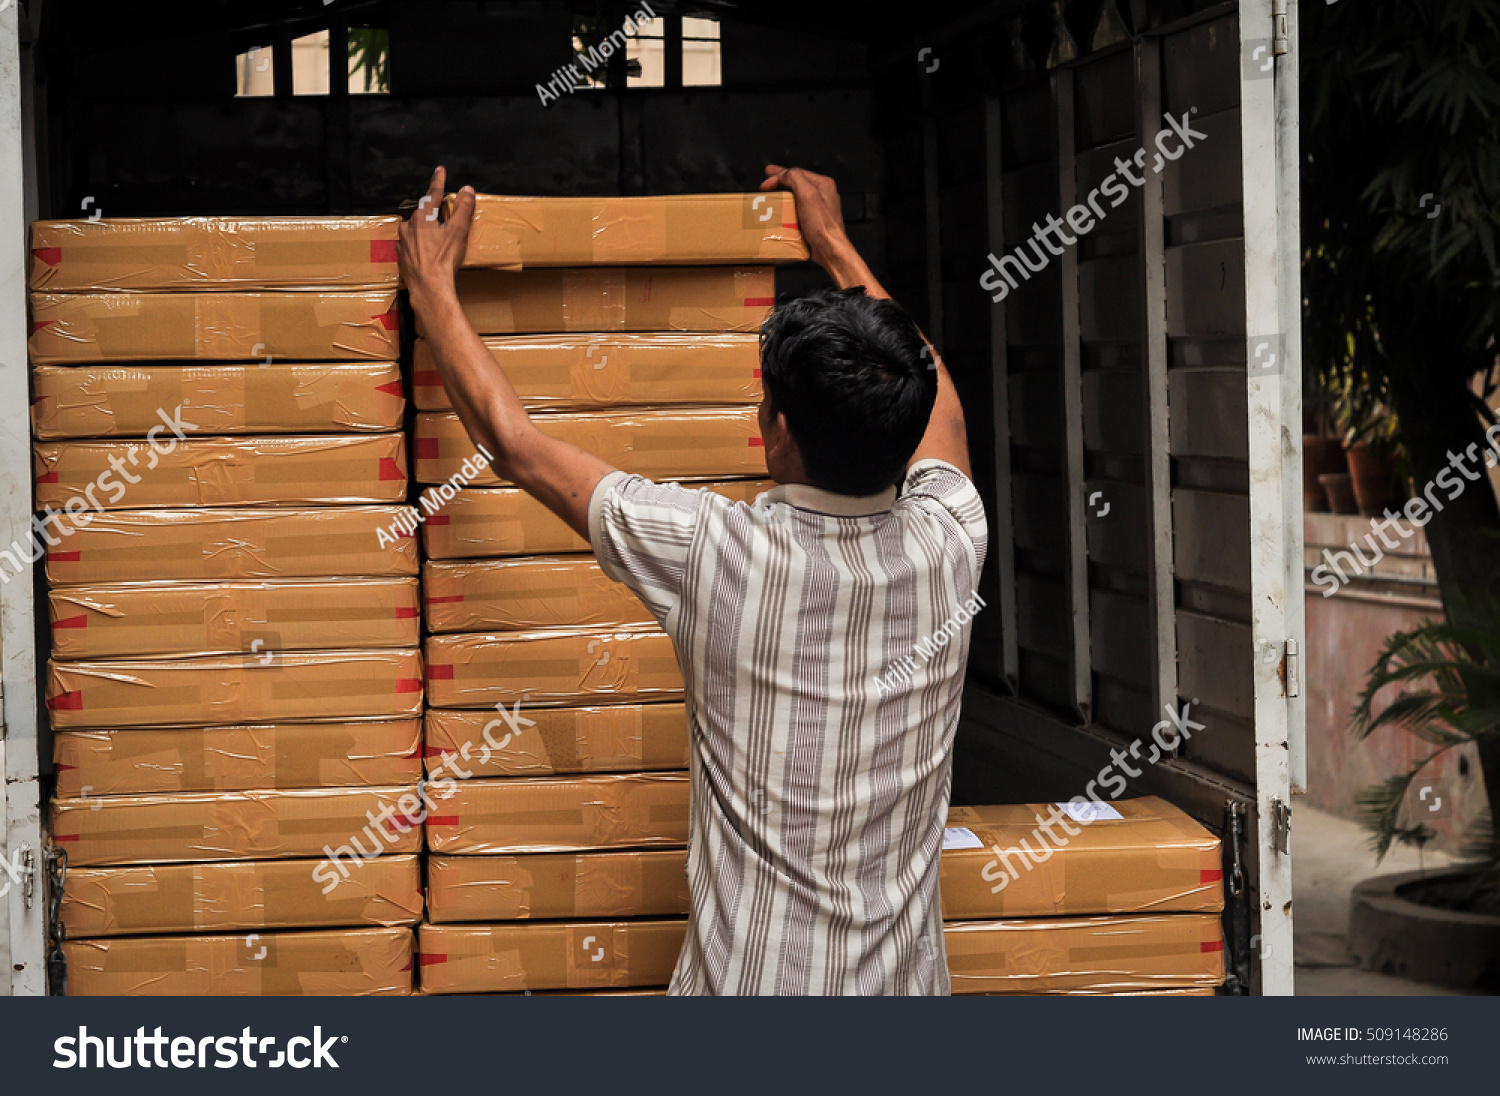 Royalty-free A courier man loading materials in a… #509148286 Stock